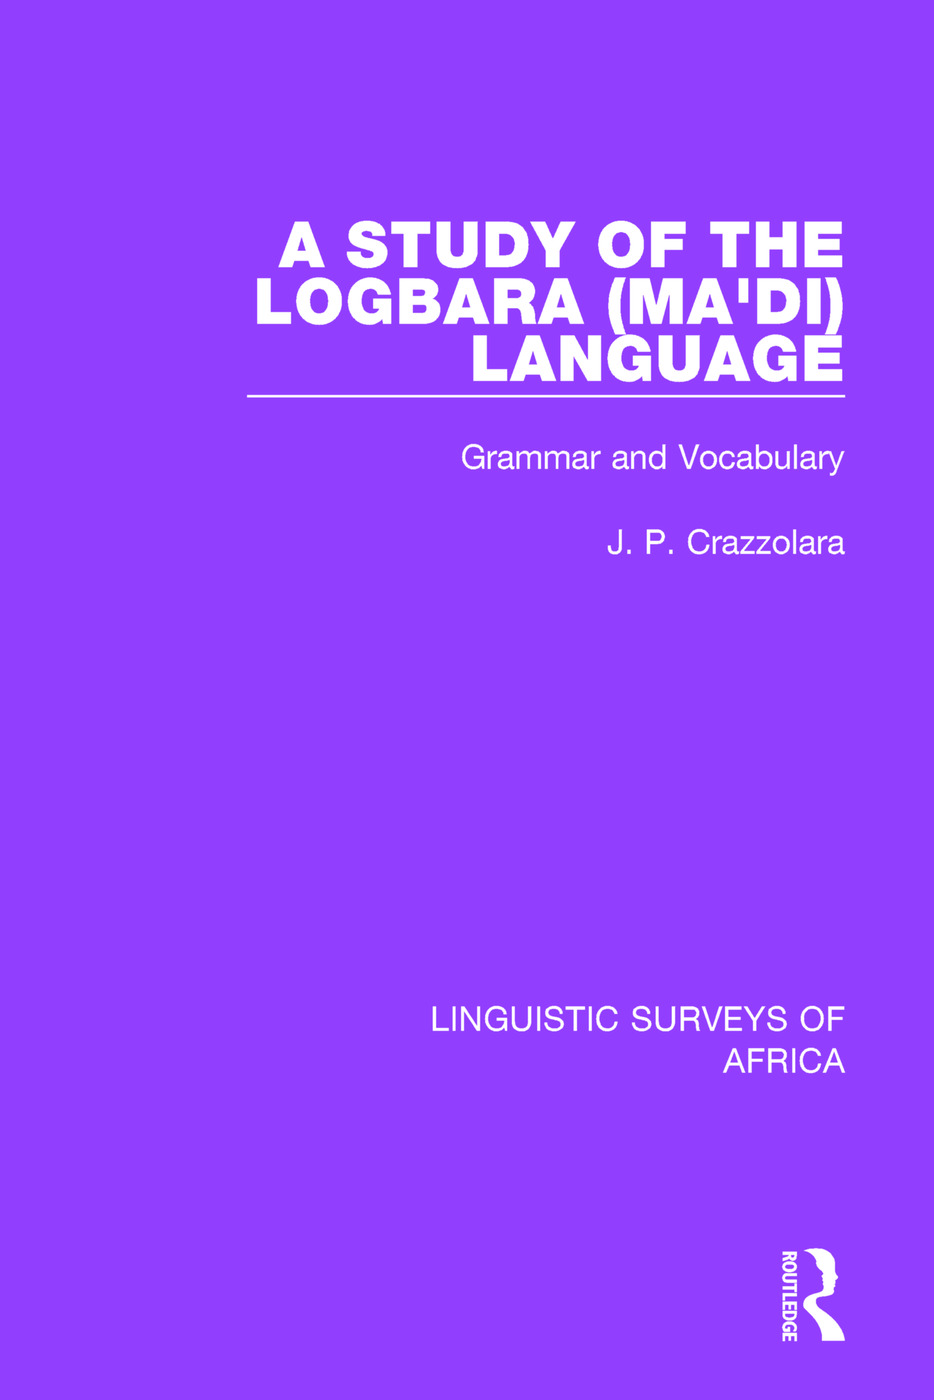 A Study of the Logbara (Ma'di) Language: Grammar and Vocabulary book cover